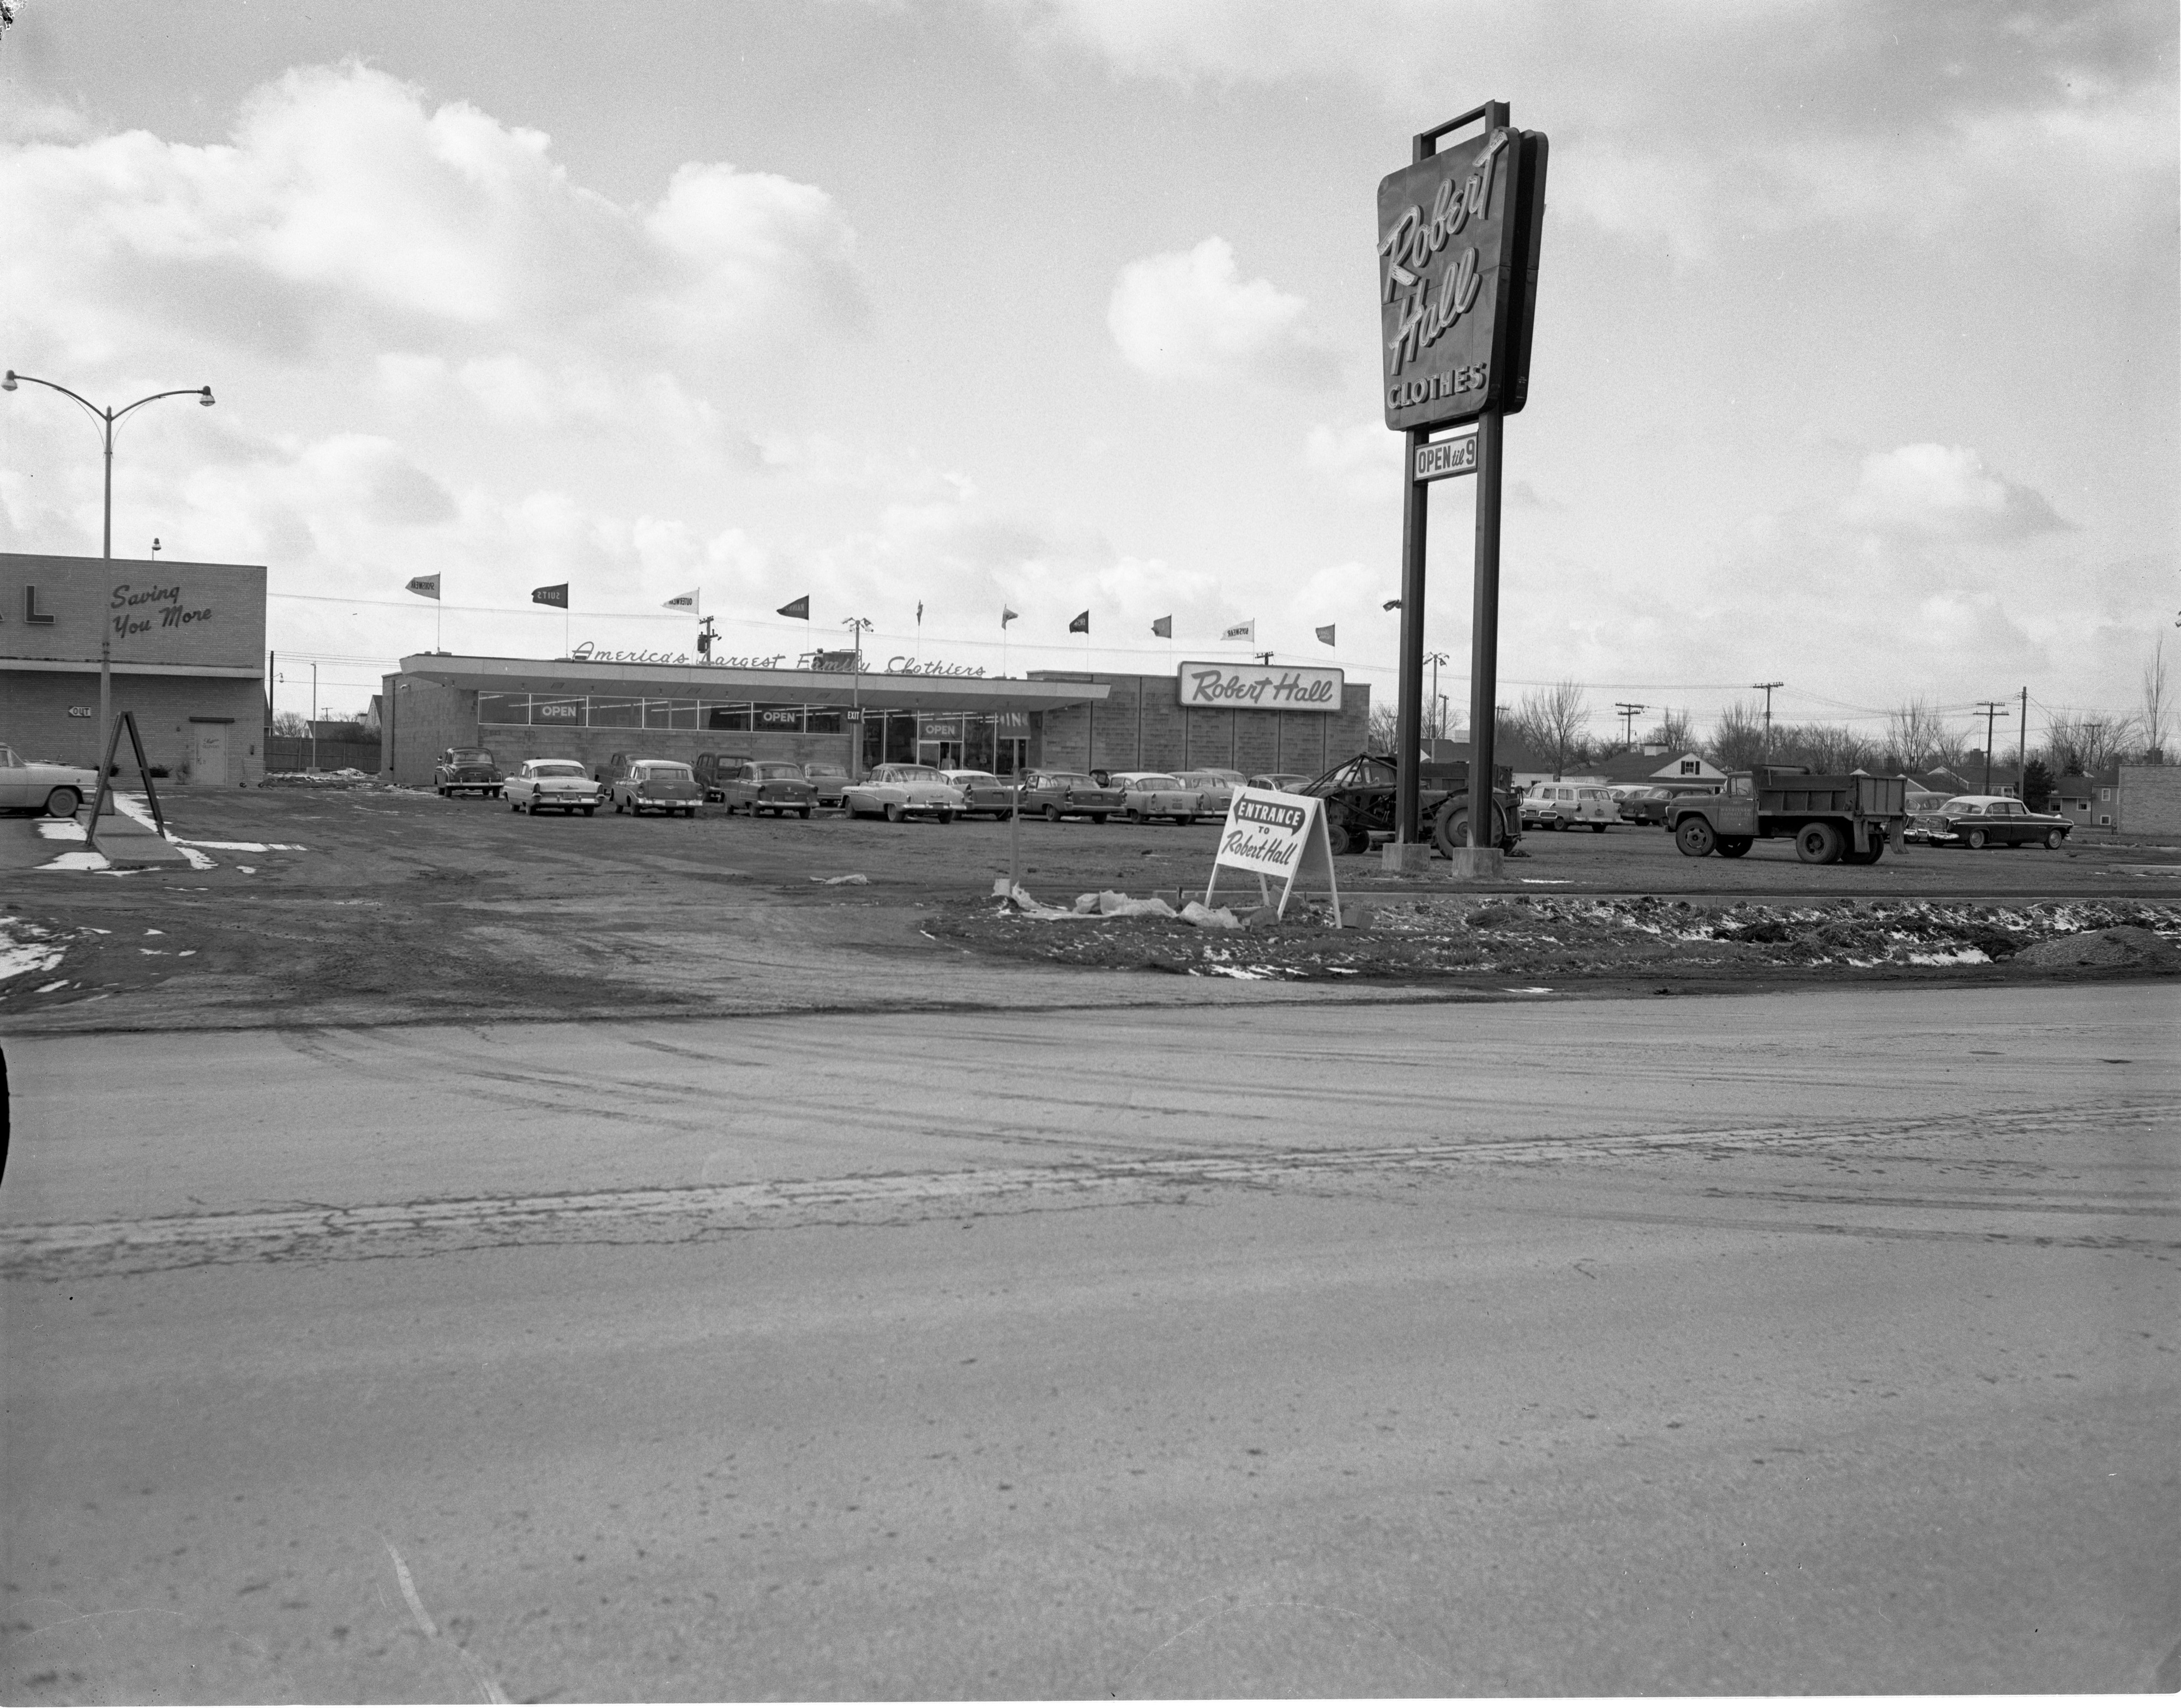 Exterior Of Robert Hall Clothes Store, March 1959 image